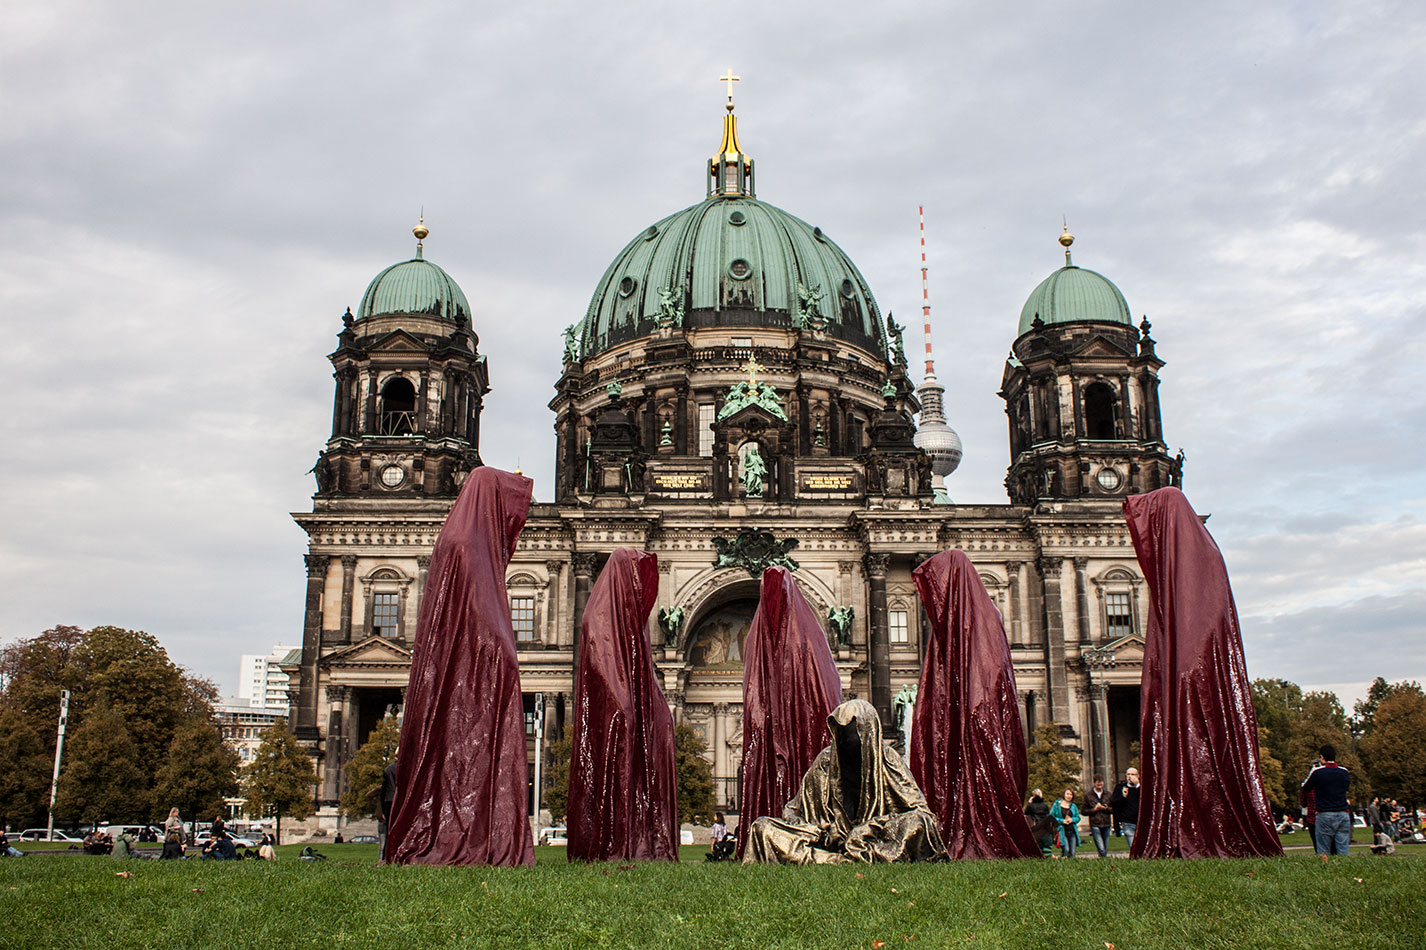 festival-of-lights-berlin-cathedral-light-art-show-exhibition-lumina-guardians-of-time-manfred-kili-kielnhofer-contemporary-arts-design-sculpture-2912